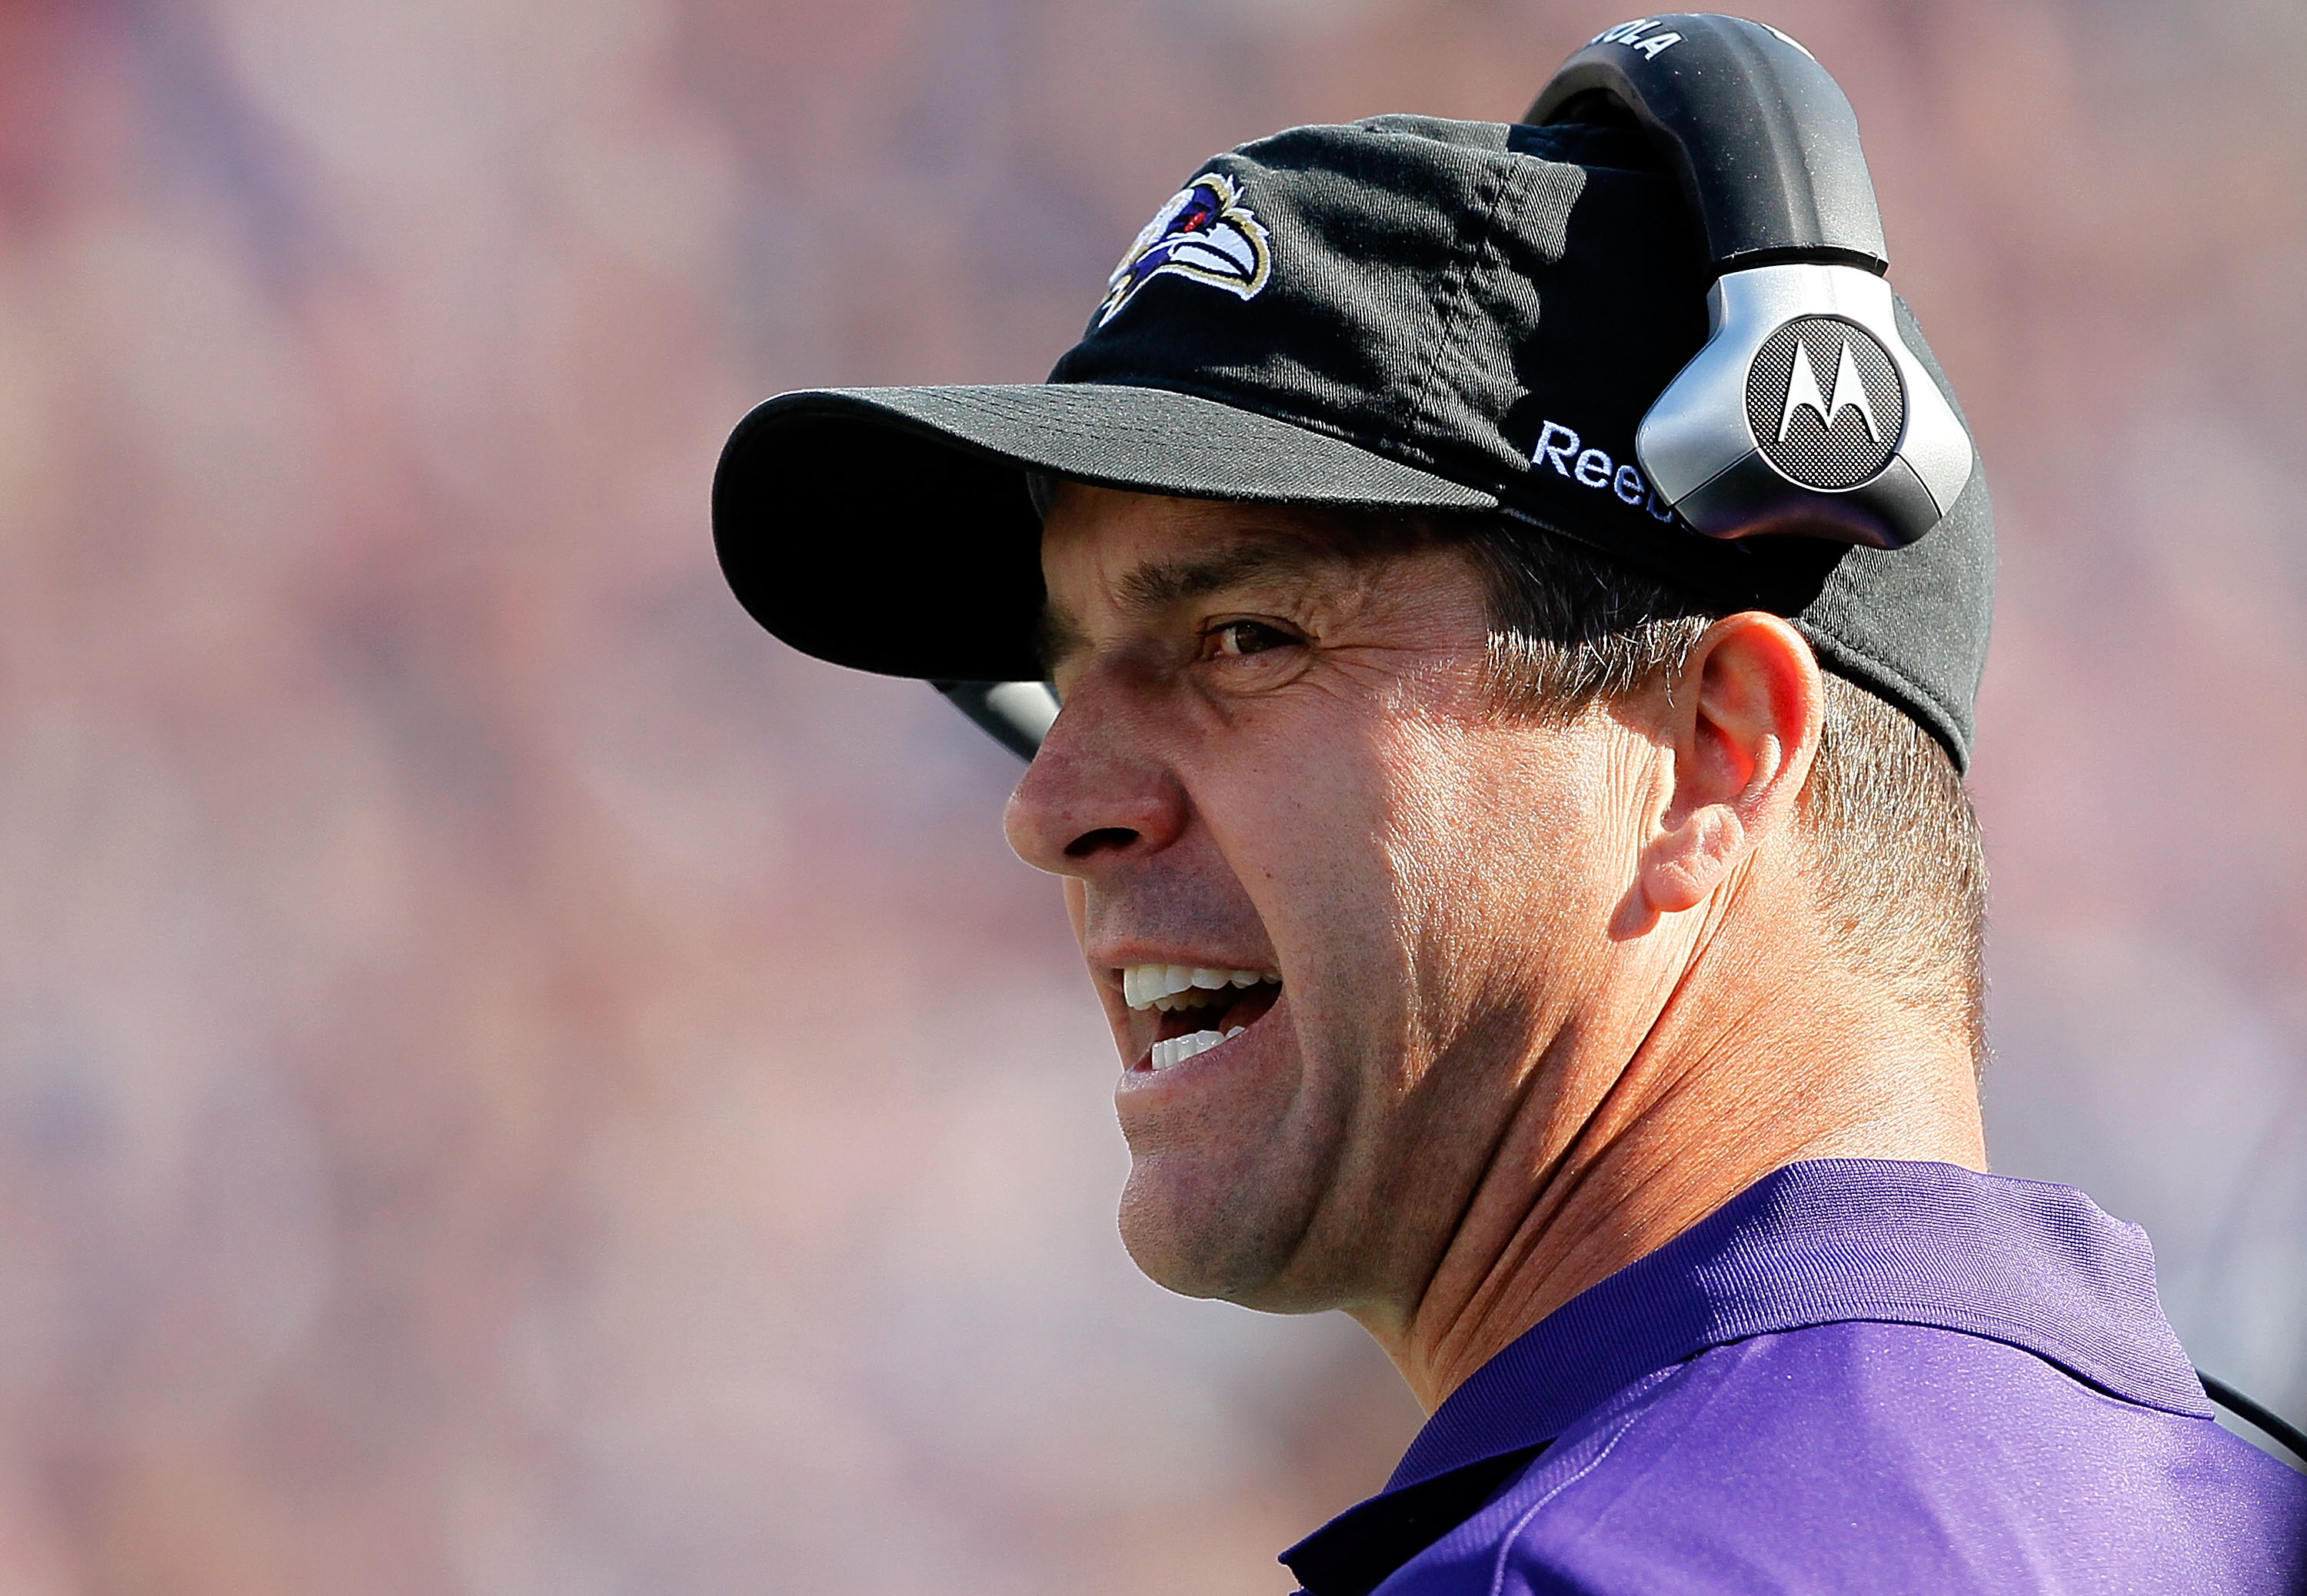 FOXBORO, MA - OCTOBER 17:  Coach John Harbaugh of the Baltimore Ravens shouts instructions in the second half in a game against the New England Patriots at Gillette Stadium on October 17, 2010 in Foxboro, Massachusetts. (Photo by Jim Rogash/Getty Images)